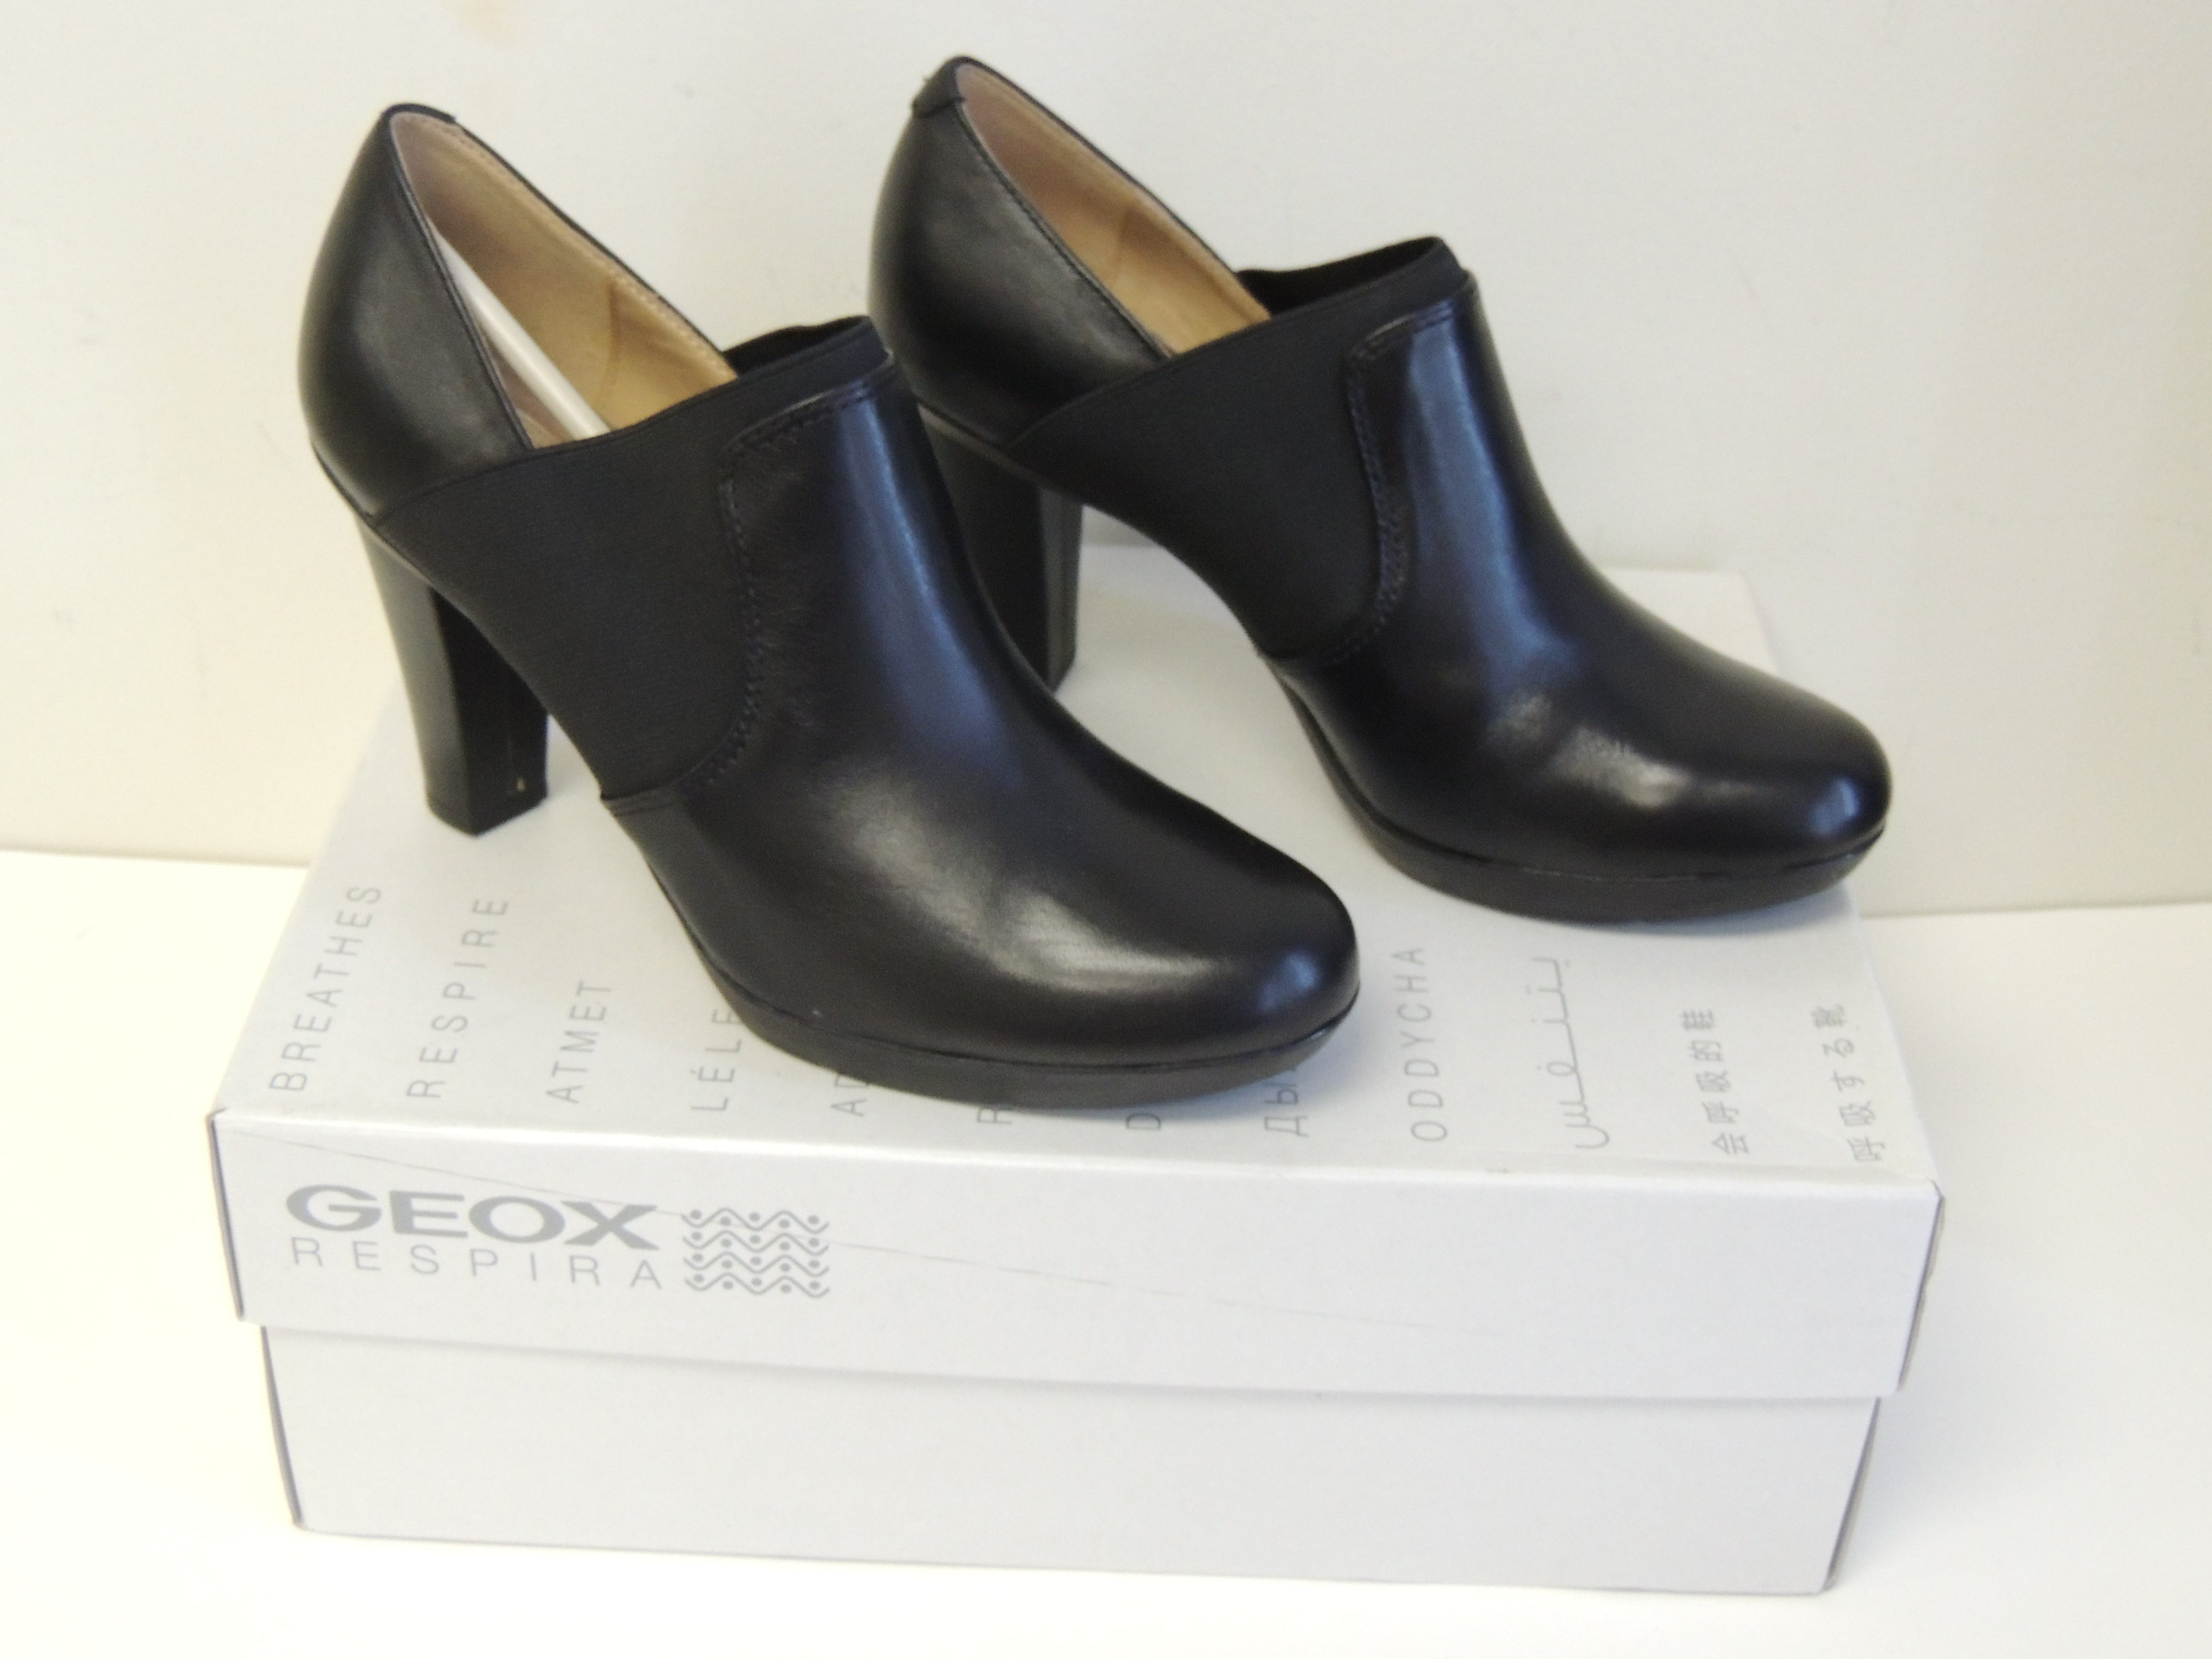 GEOX D Inspiration Shootie Black Leather Shoes, Size 6.5 / 36.5 EU